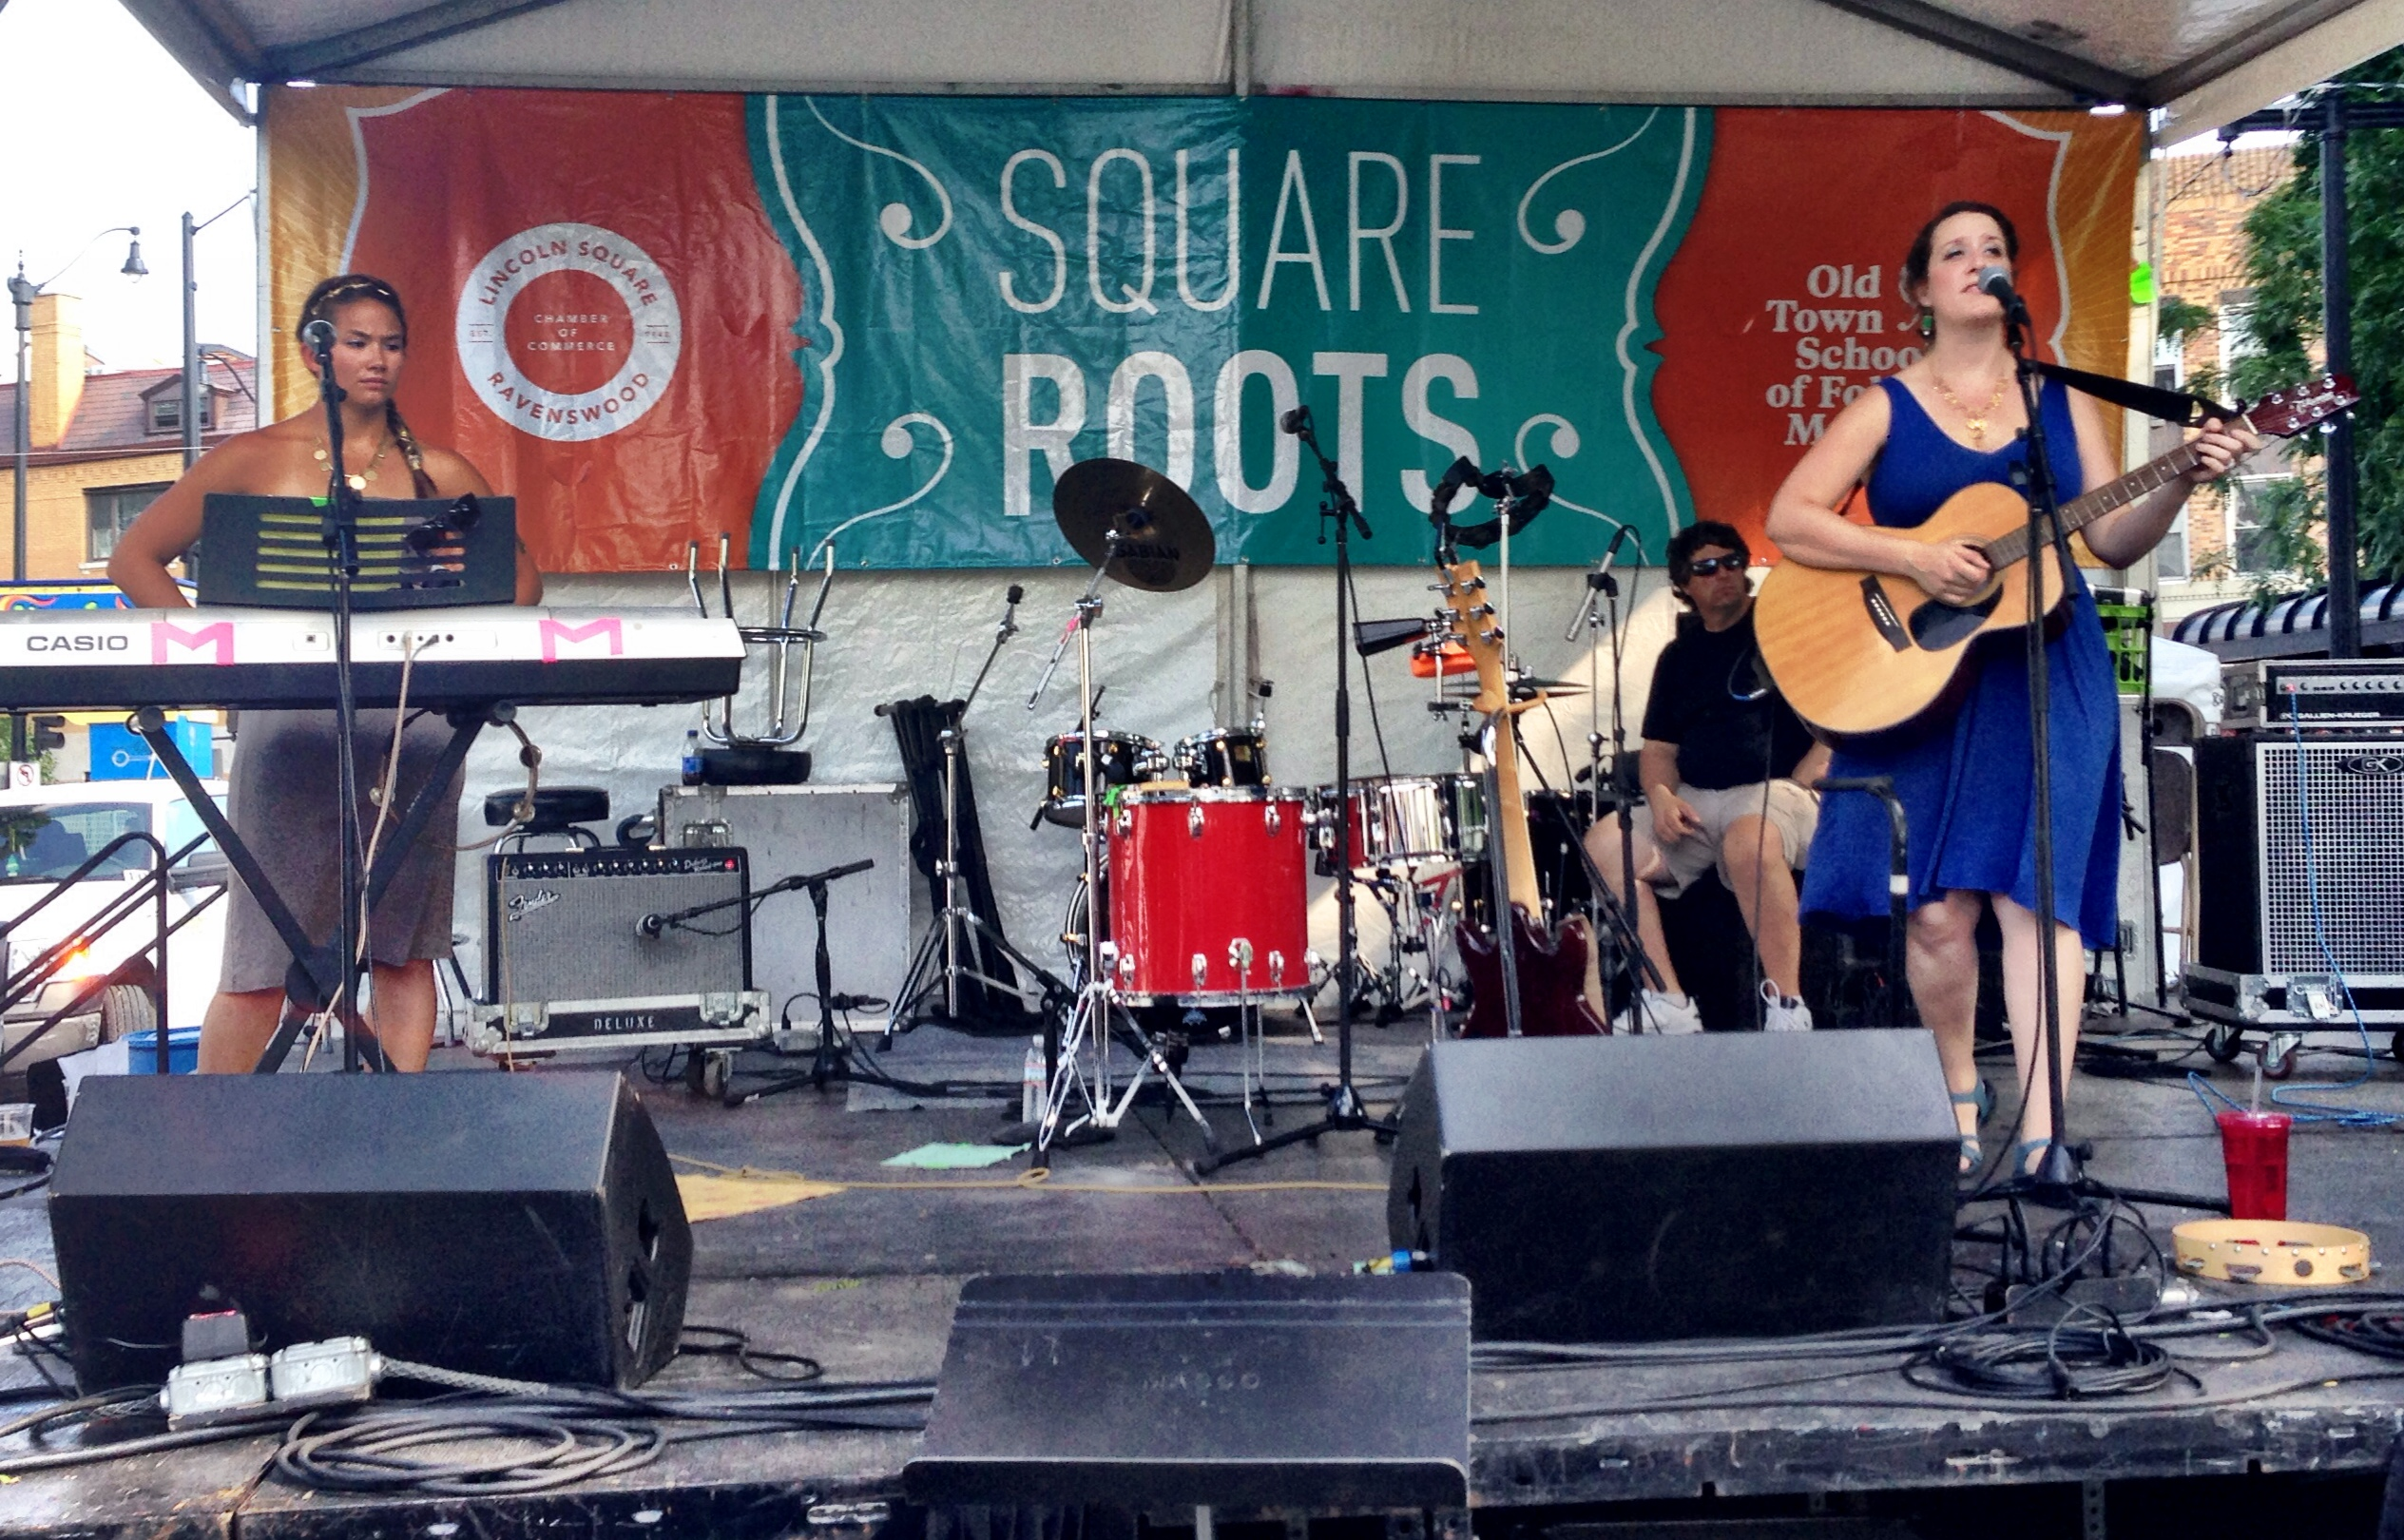 Midnight Moxie on the South Stage at Square Roots Festival 2014